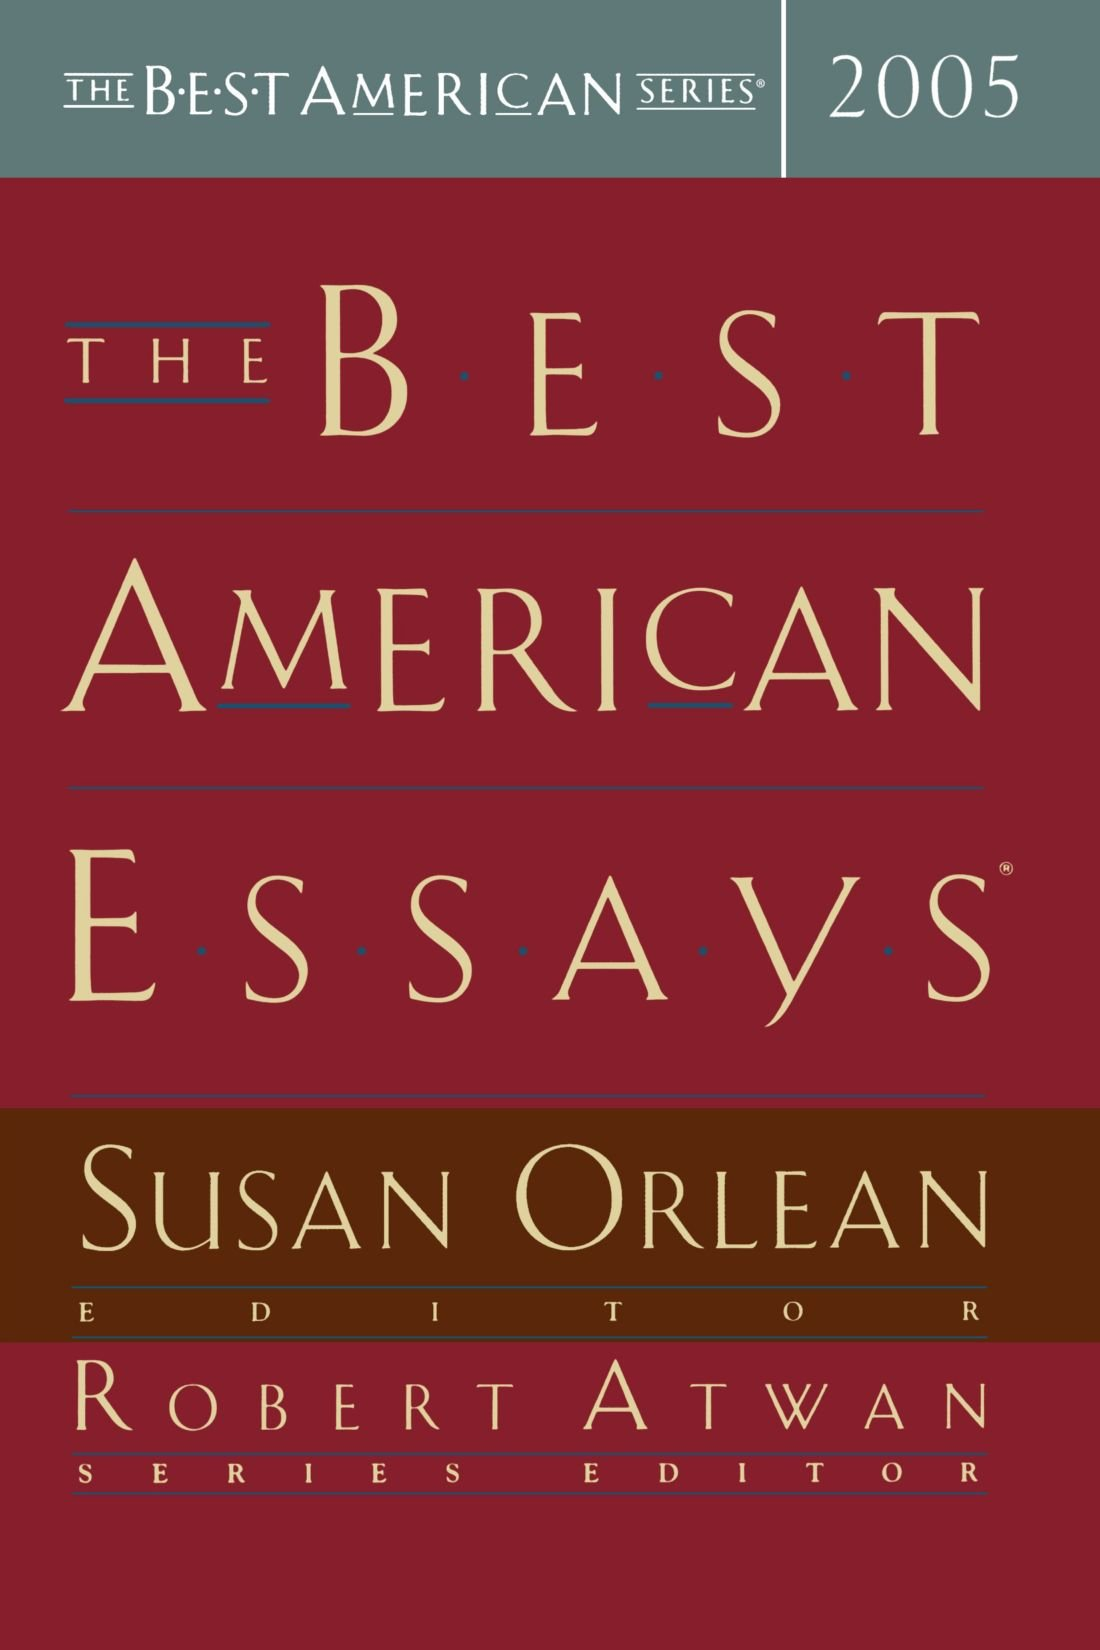 009 Essay Example 61eba7rjfxl The Best American Wonderful Essays 2018 Pdf 2017 Table Of Contents 2015 Free Full